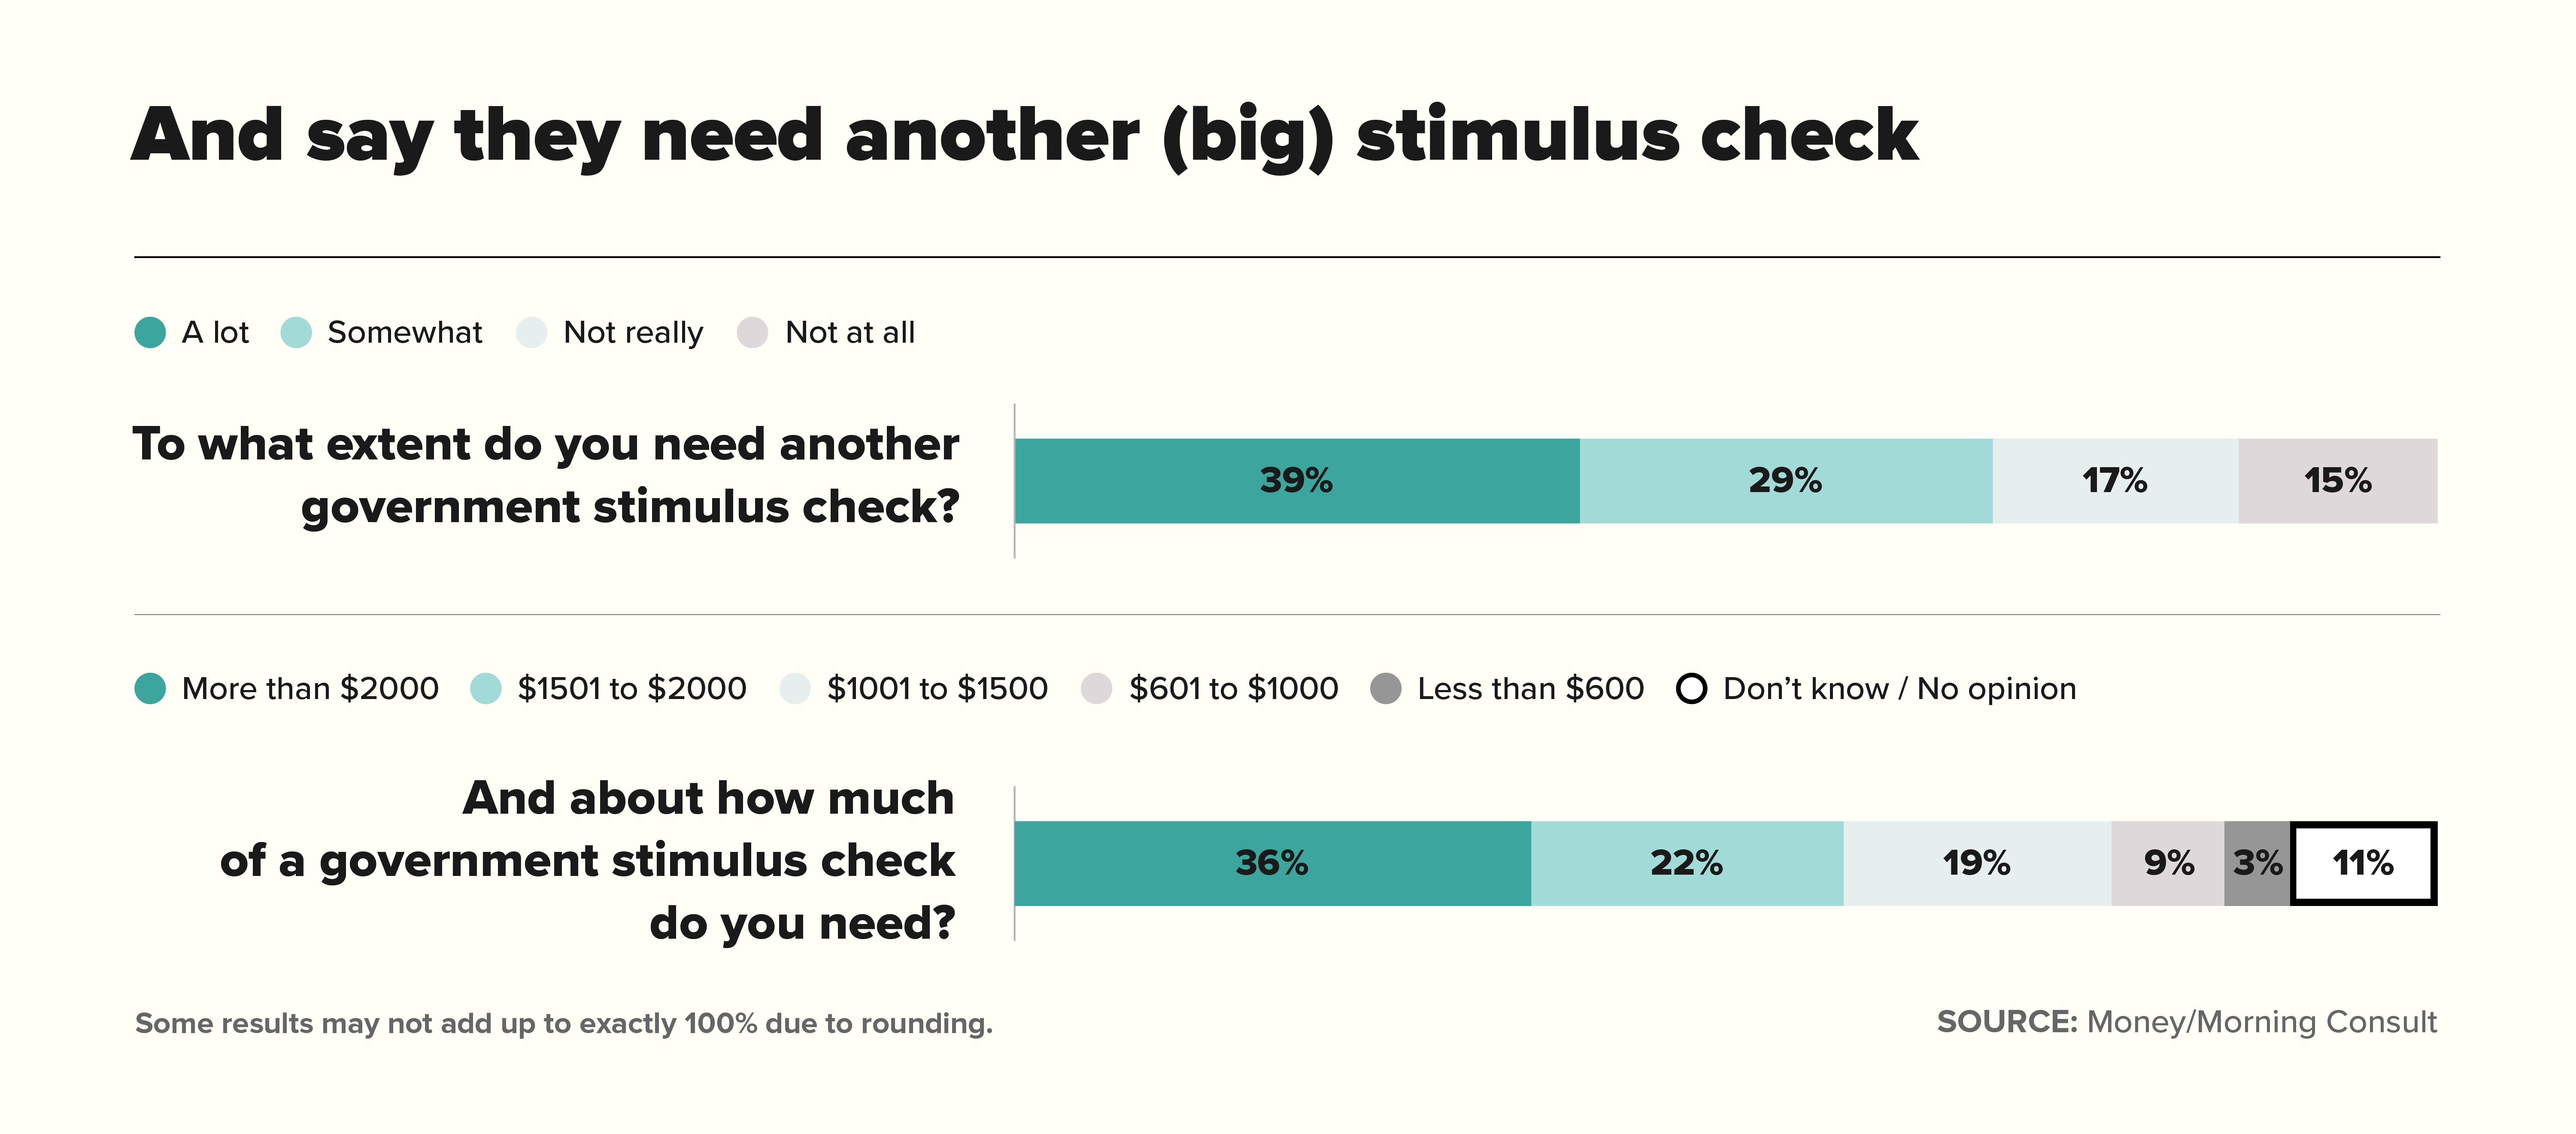 Chart for and say they need another (big) stimulus check